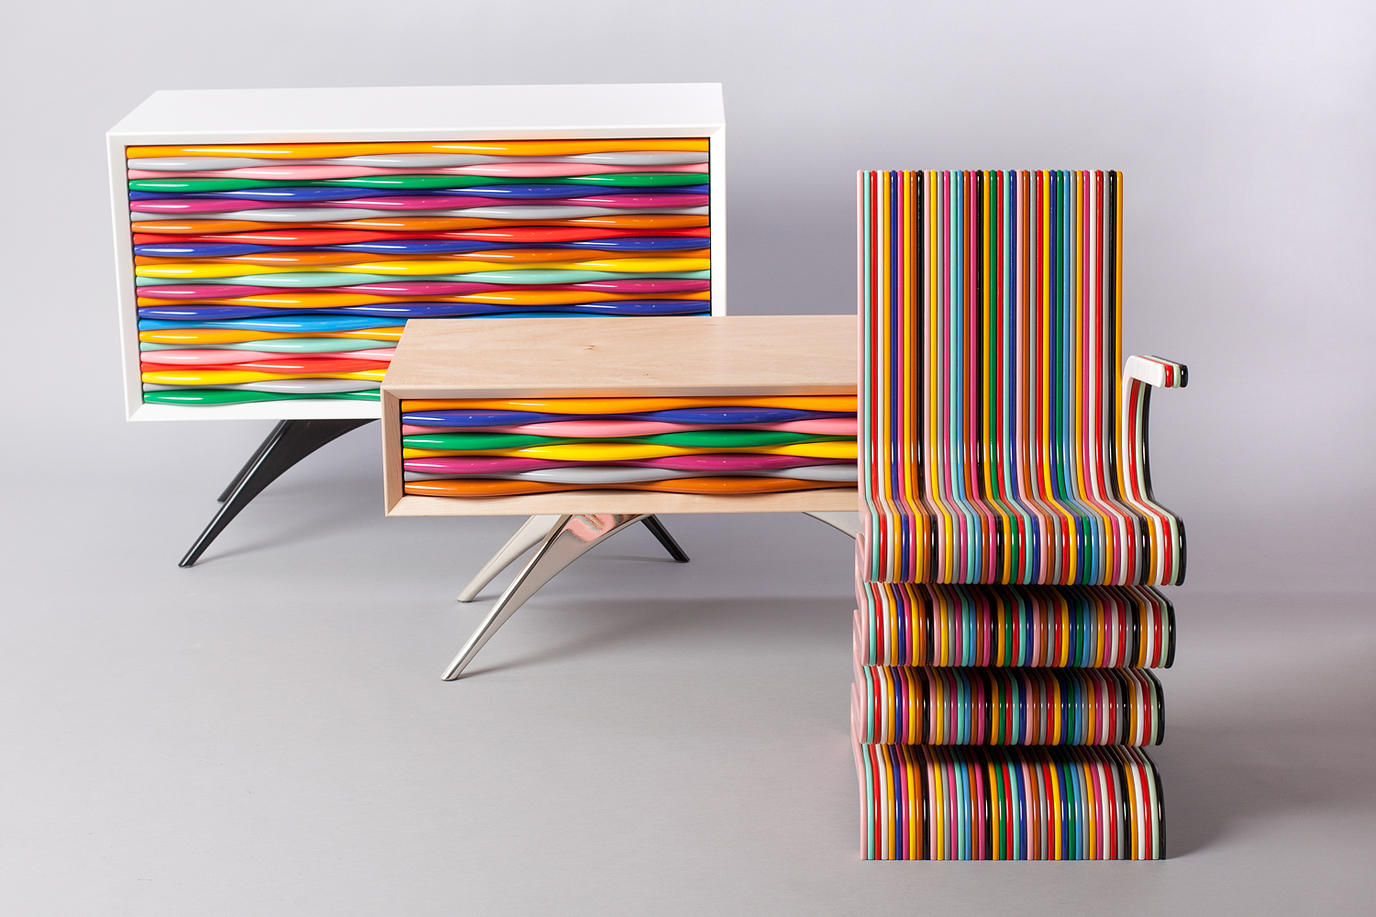 Design pop mobili multicolor di anthony hartley for Studi di design di mobili